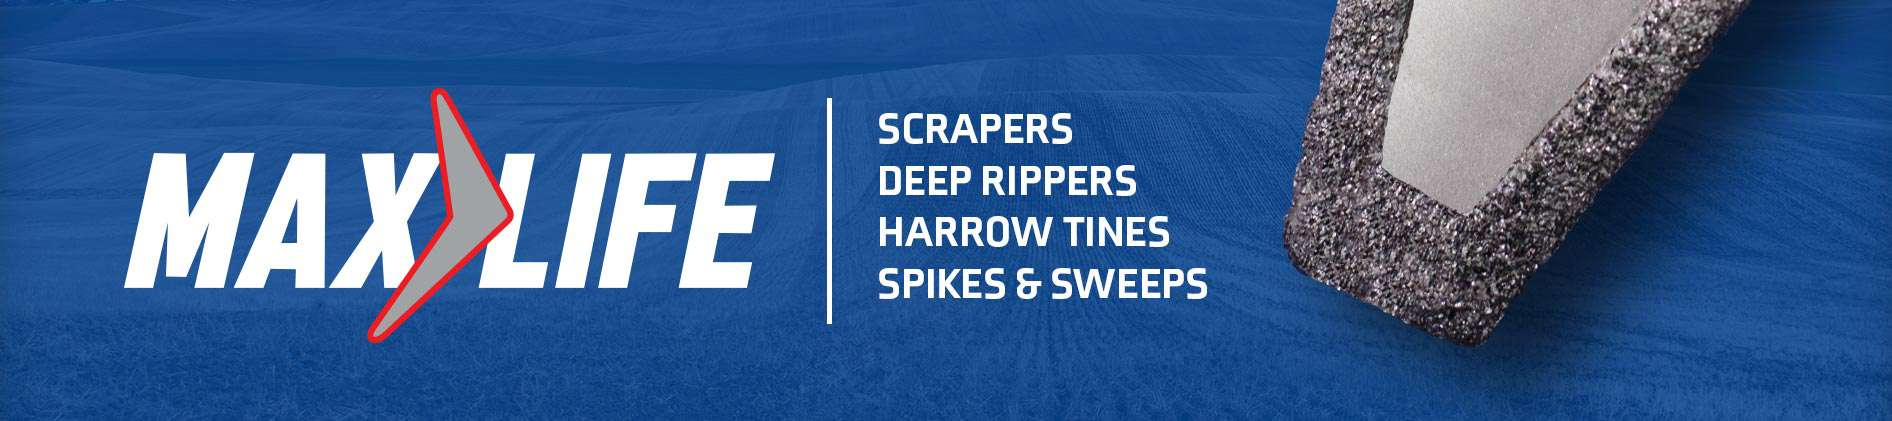 Max Life scrapers, deep rippers, harrow tines, sweeps, spikes